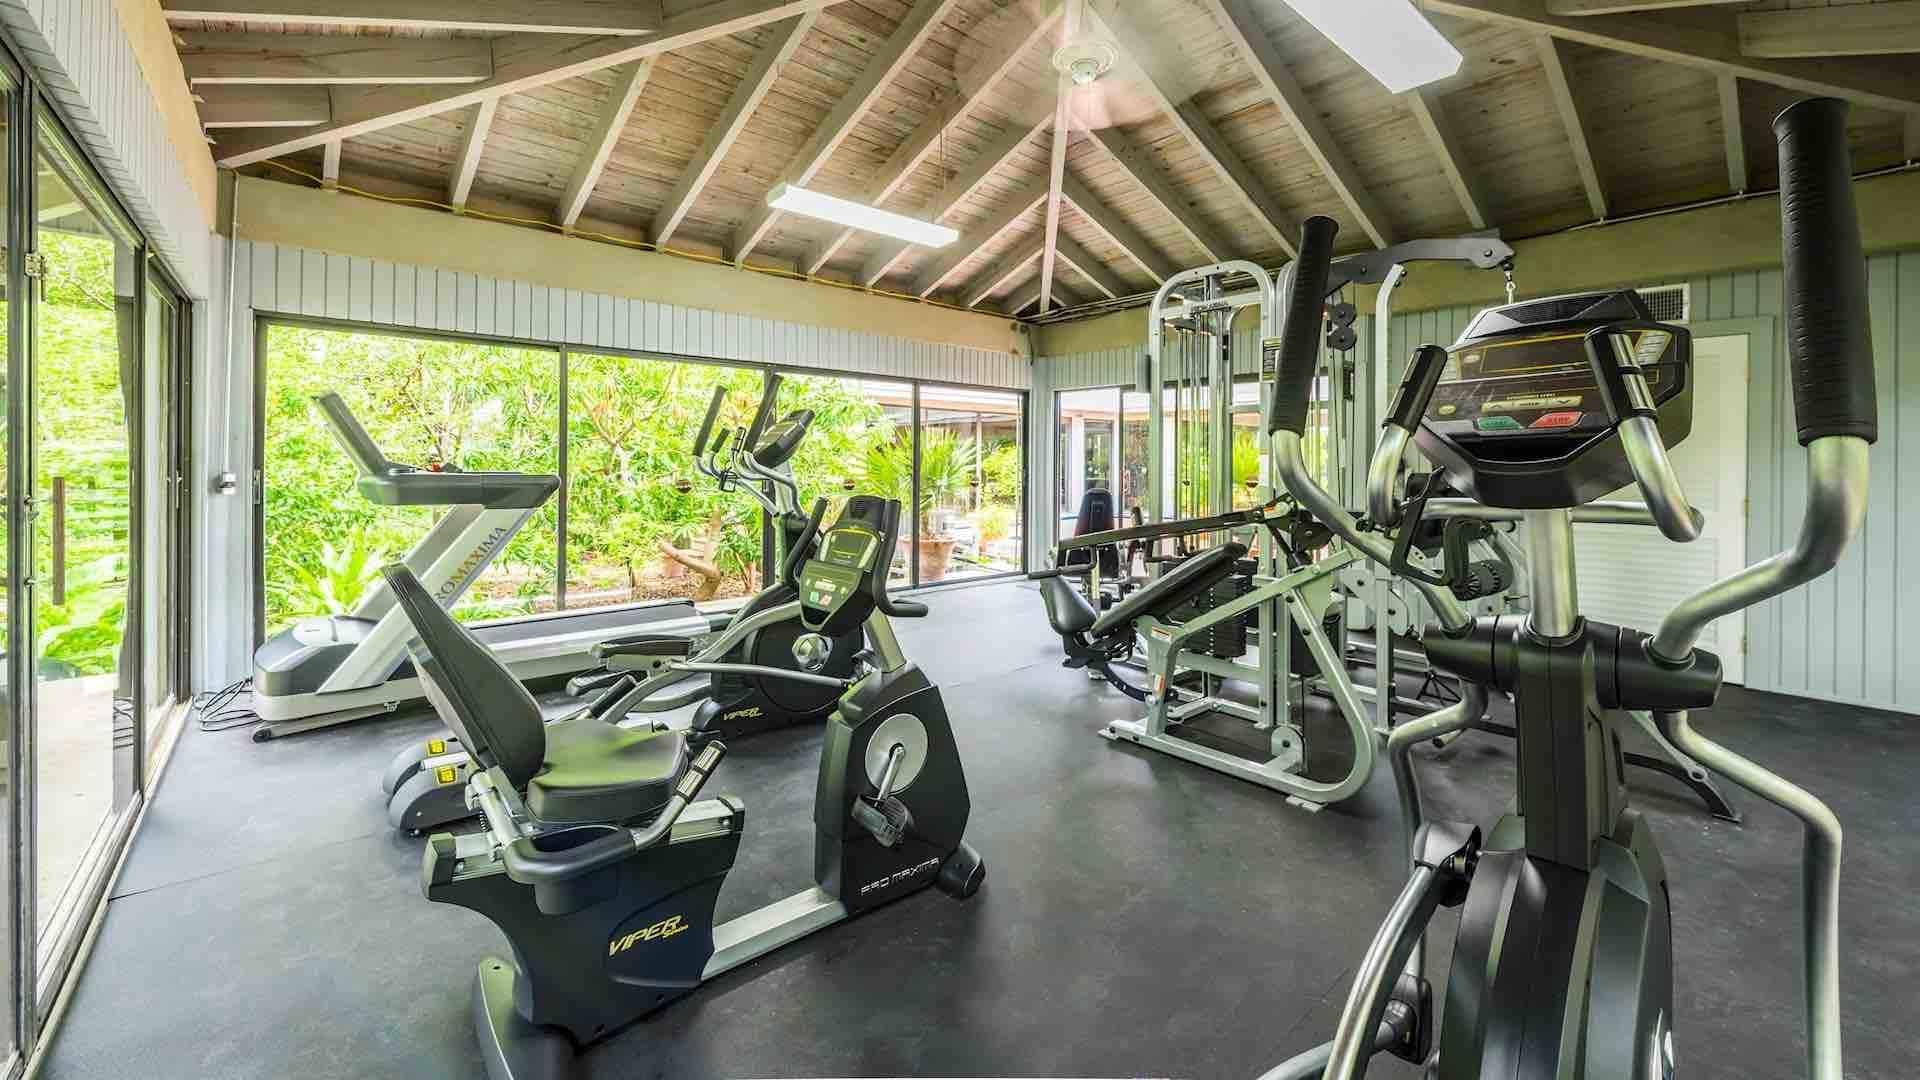 Break a sweat using the new fitness center...